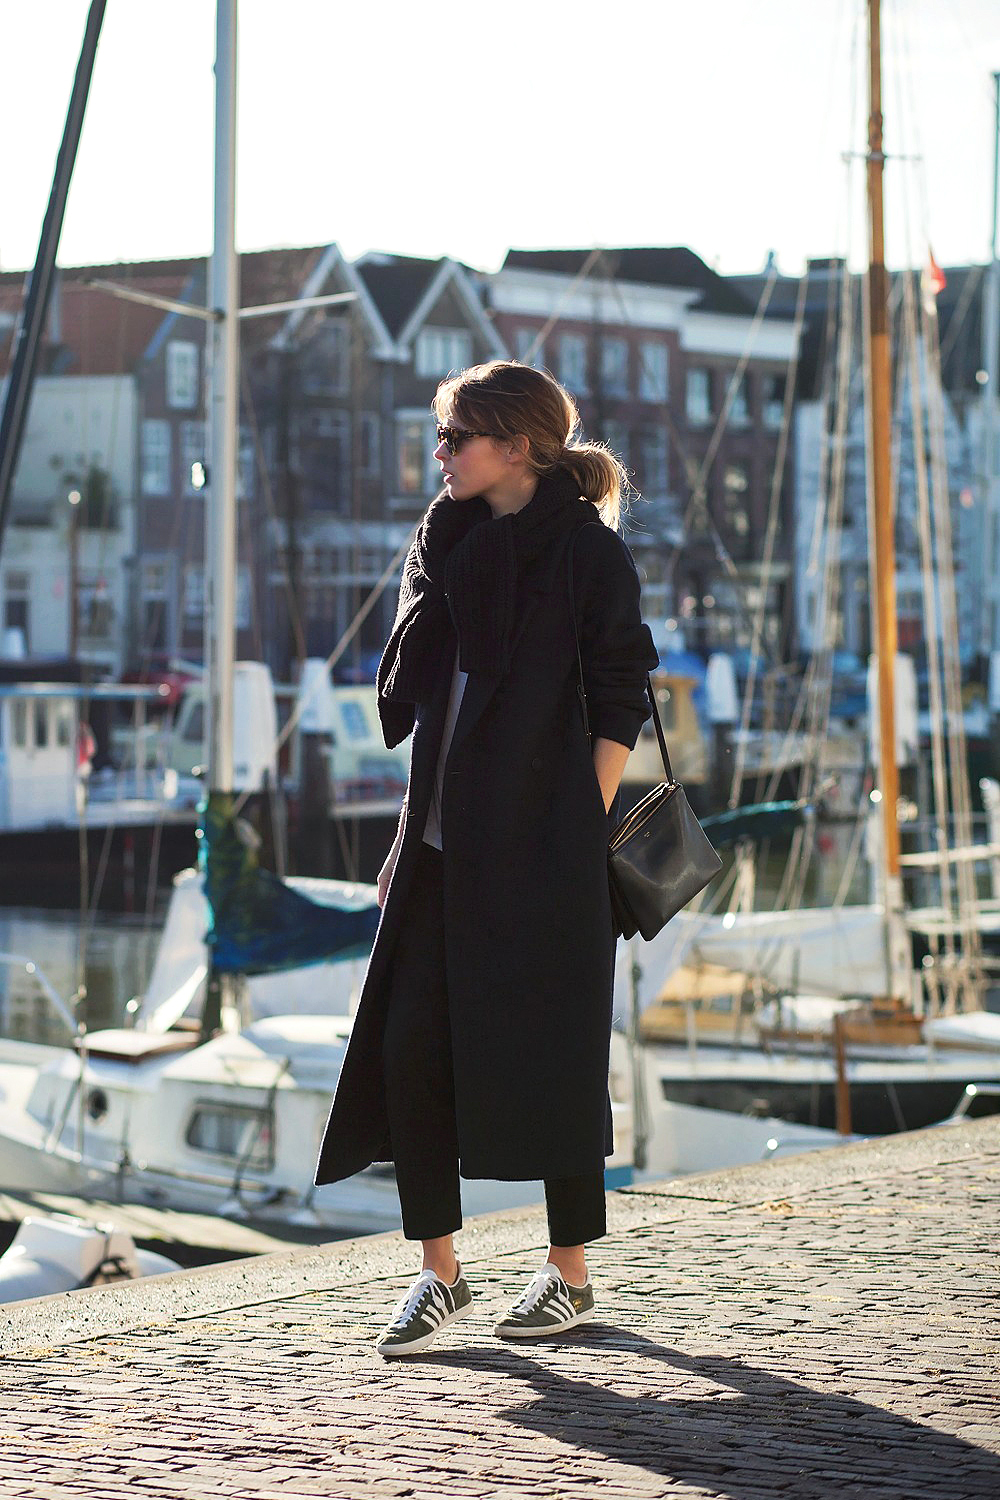 A black maxi coat is a must have for a classy winter style. Christine R. wears this oversized coat with cigarette trousers and sneakers; a casual and easy christmas look. Coat/Tee/Trousers: COS, Sweater: Ganni, Sneakers: Adidas, Bag: Céline.